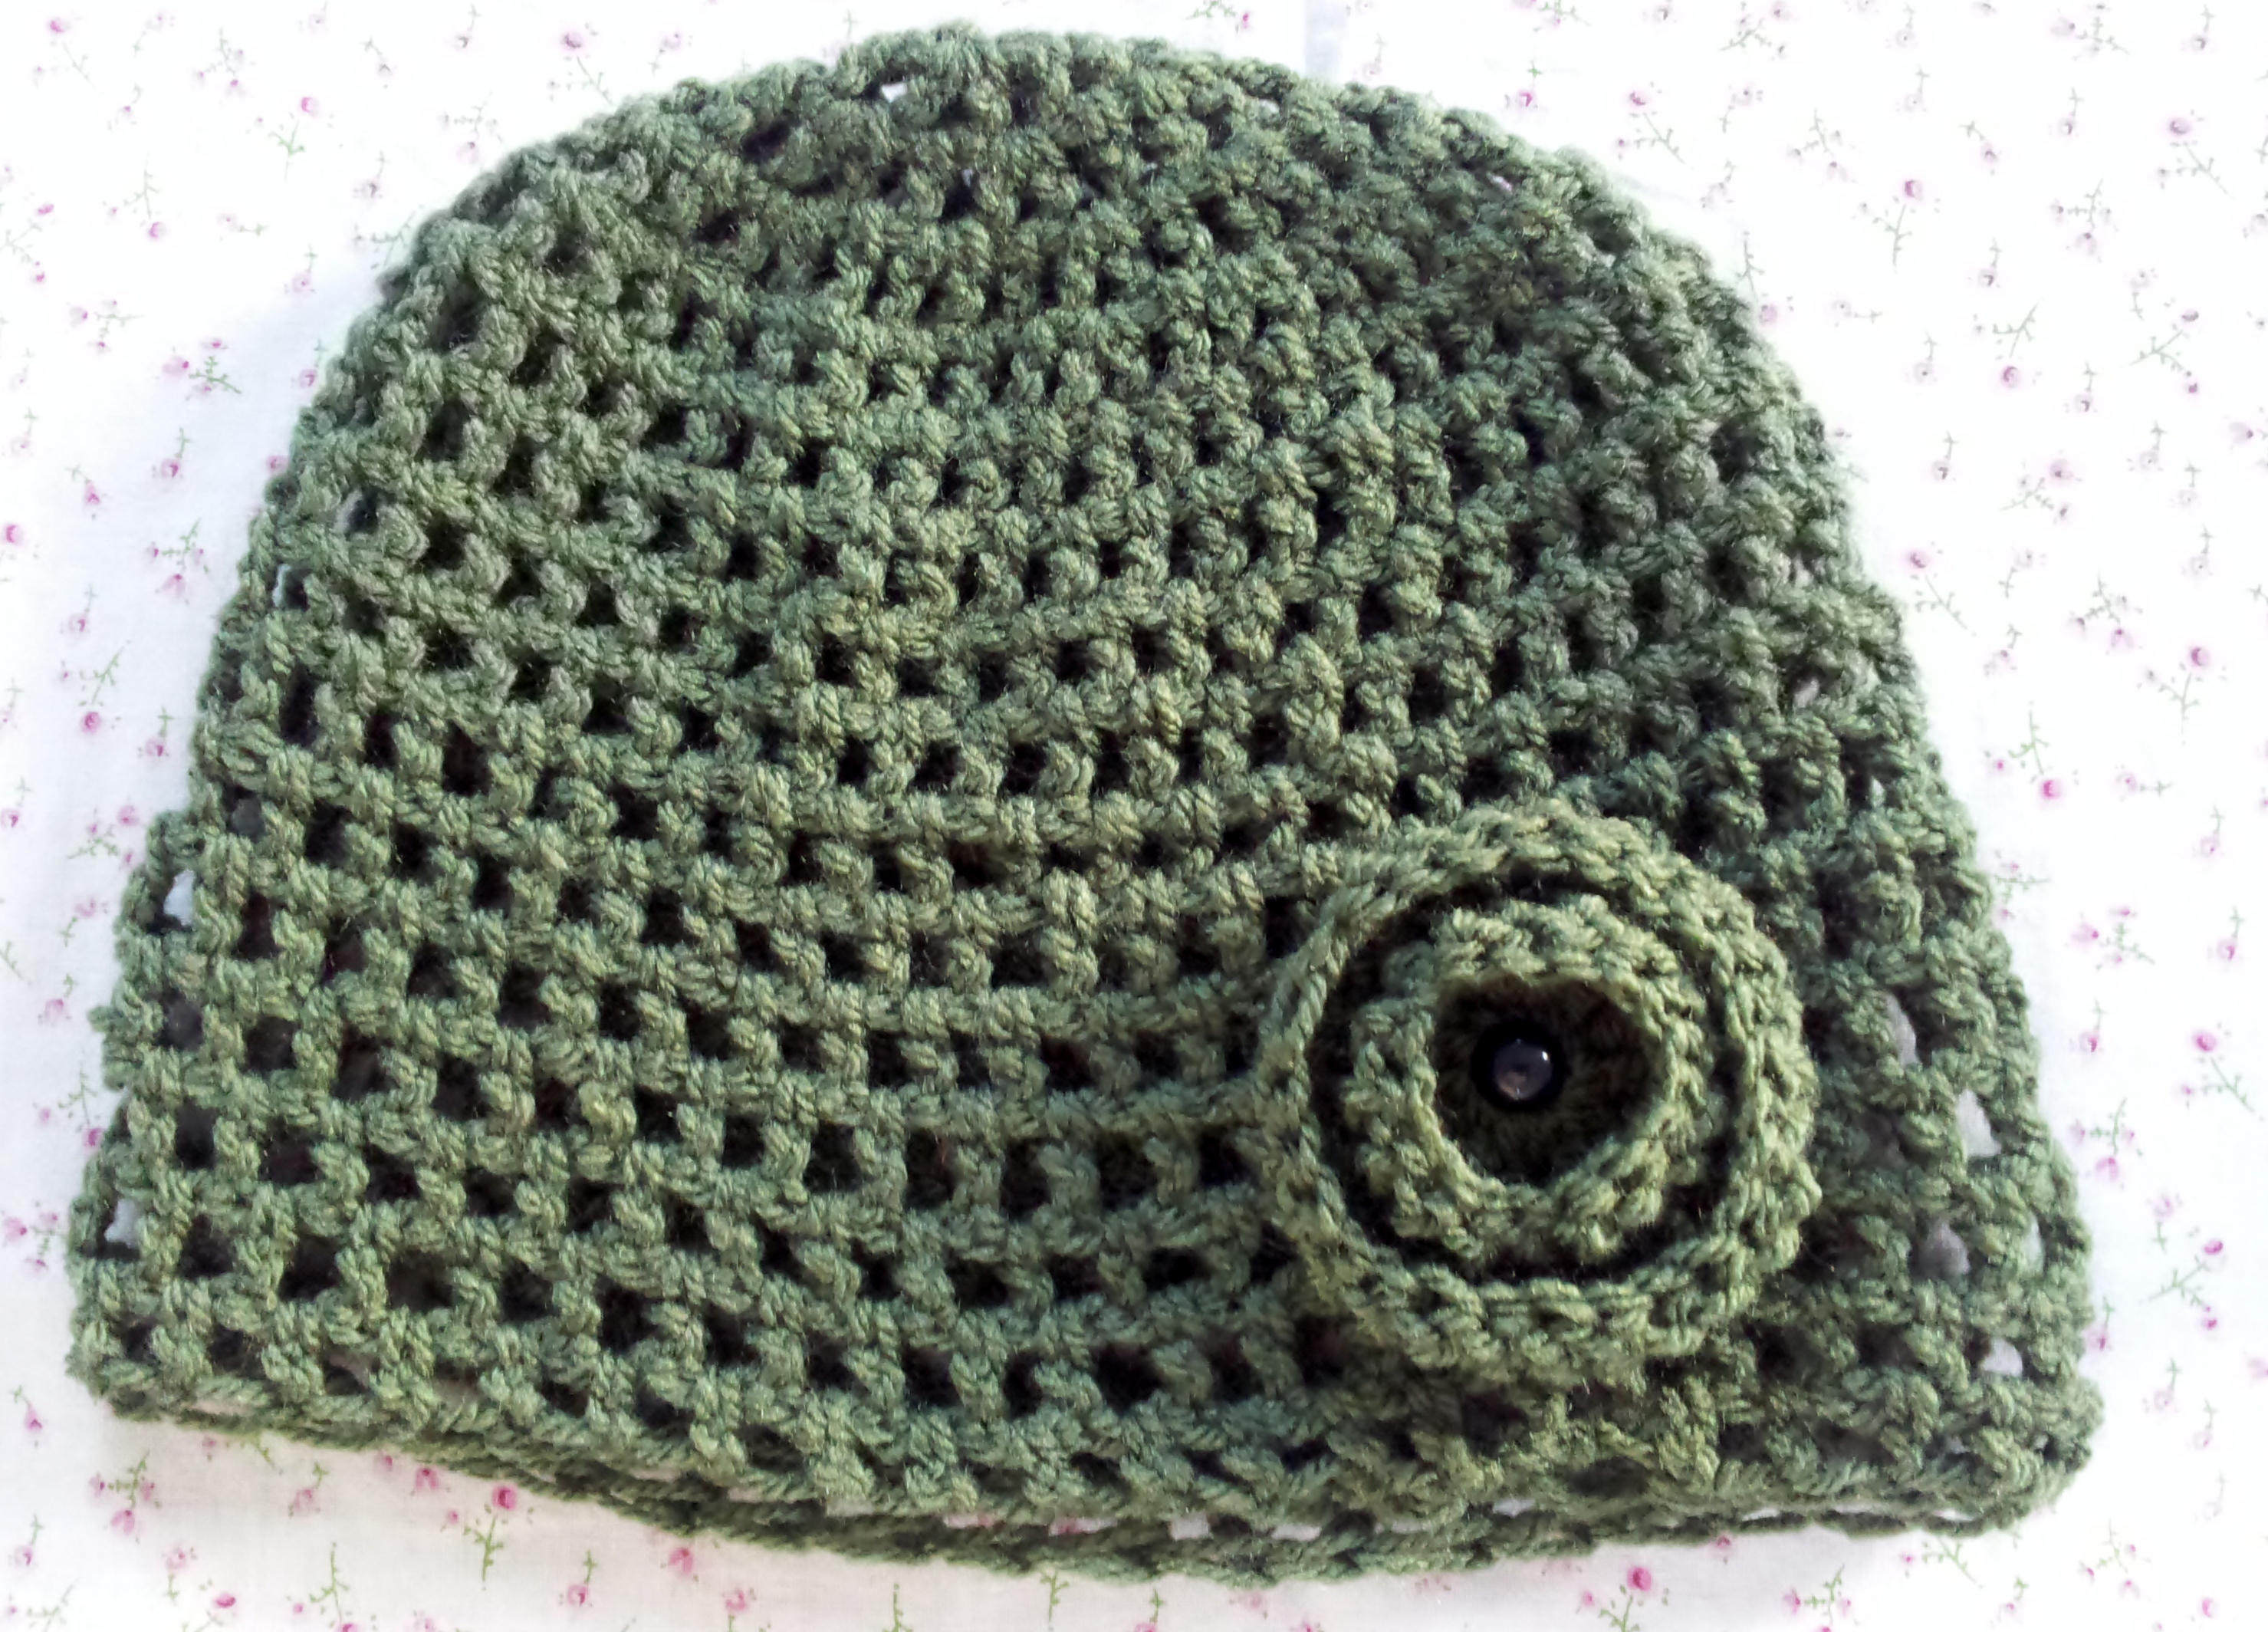 Easy Crochet Flower Patterns For Hats : How to make a Simple Crochet Hat ? Free Pattern ...